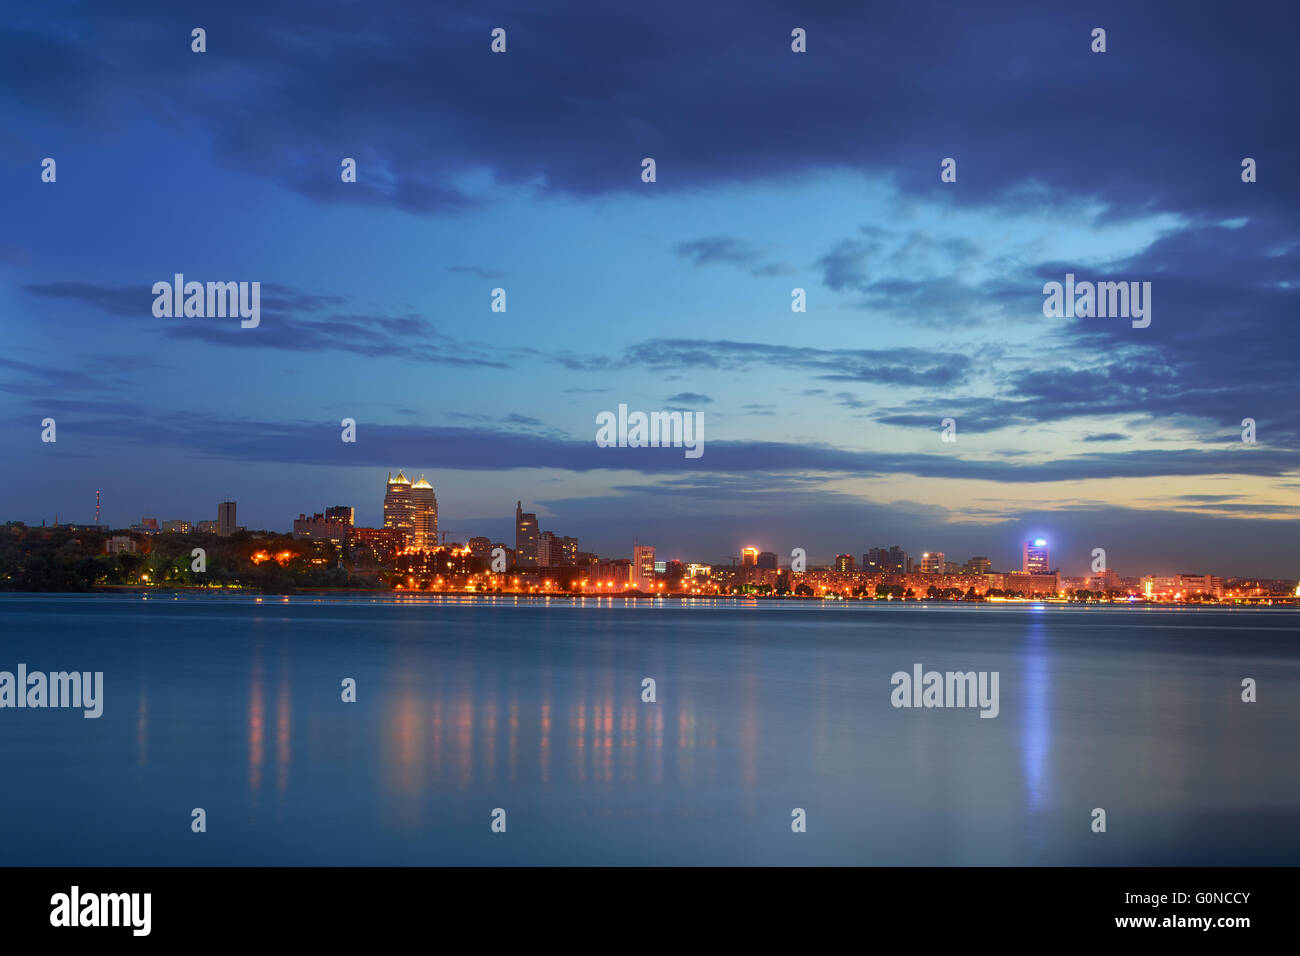 Vew of the waterfront at dusk Dnipropetrovsk. - Stock Image